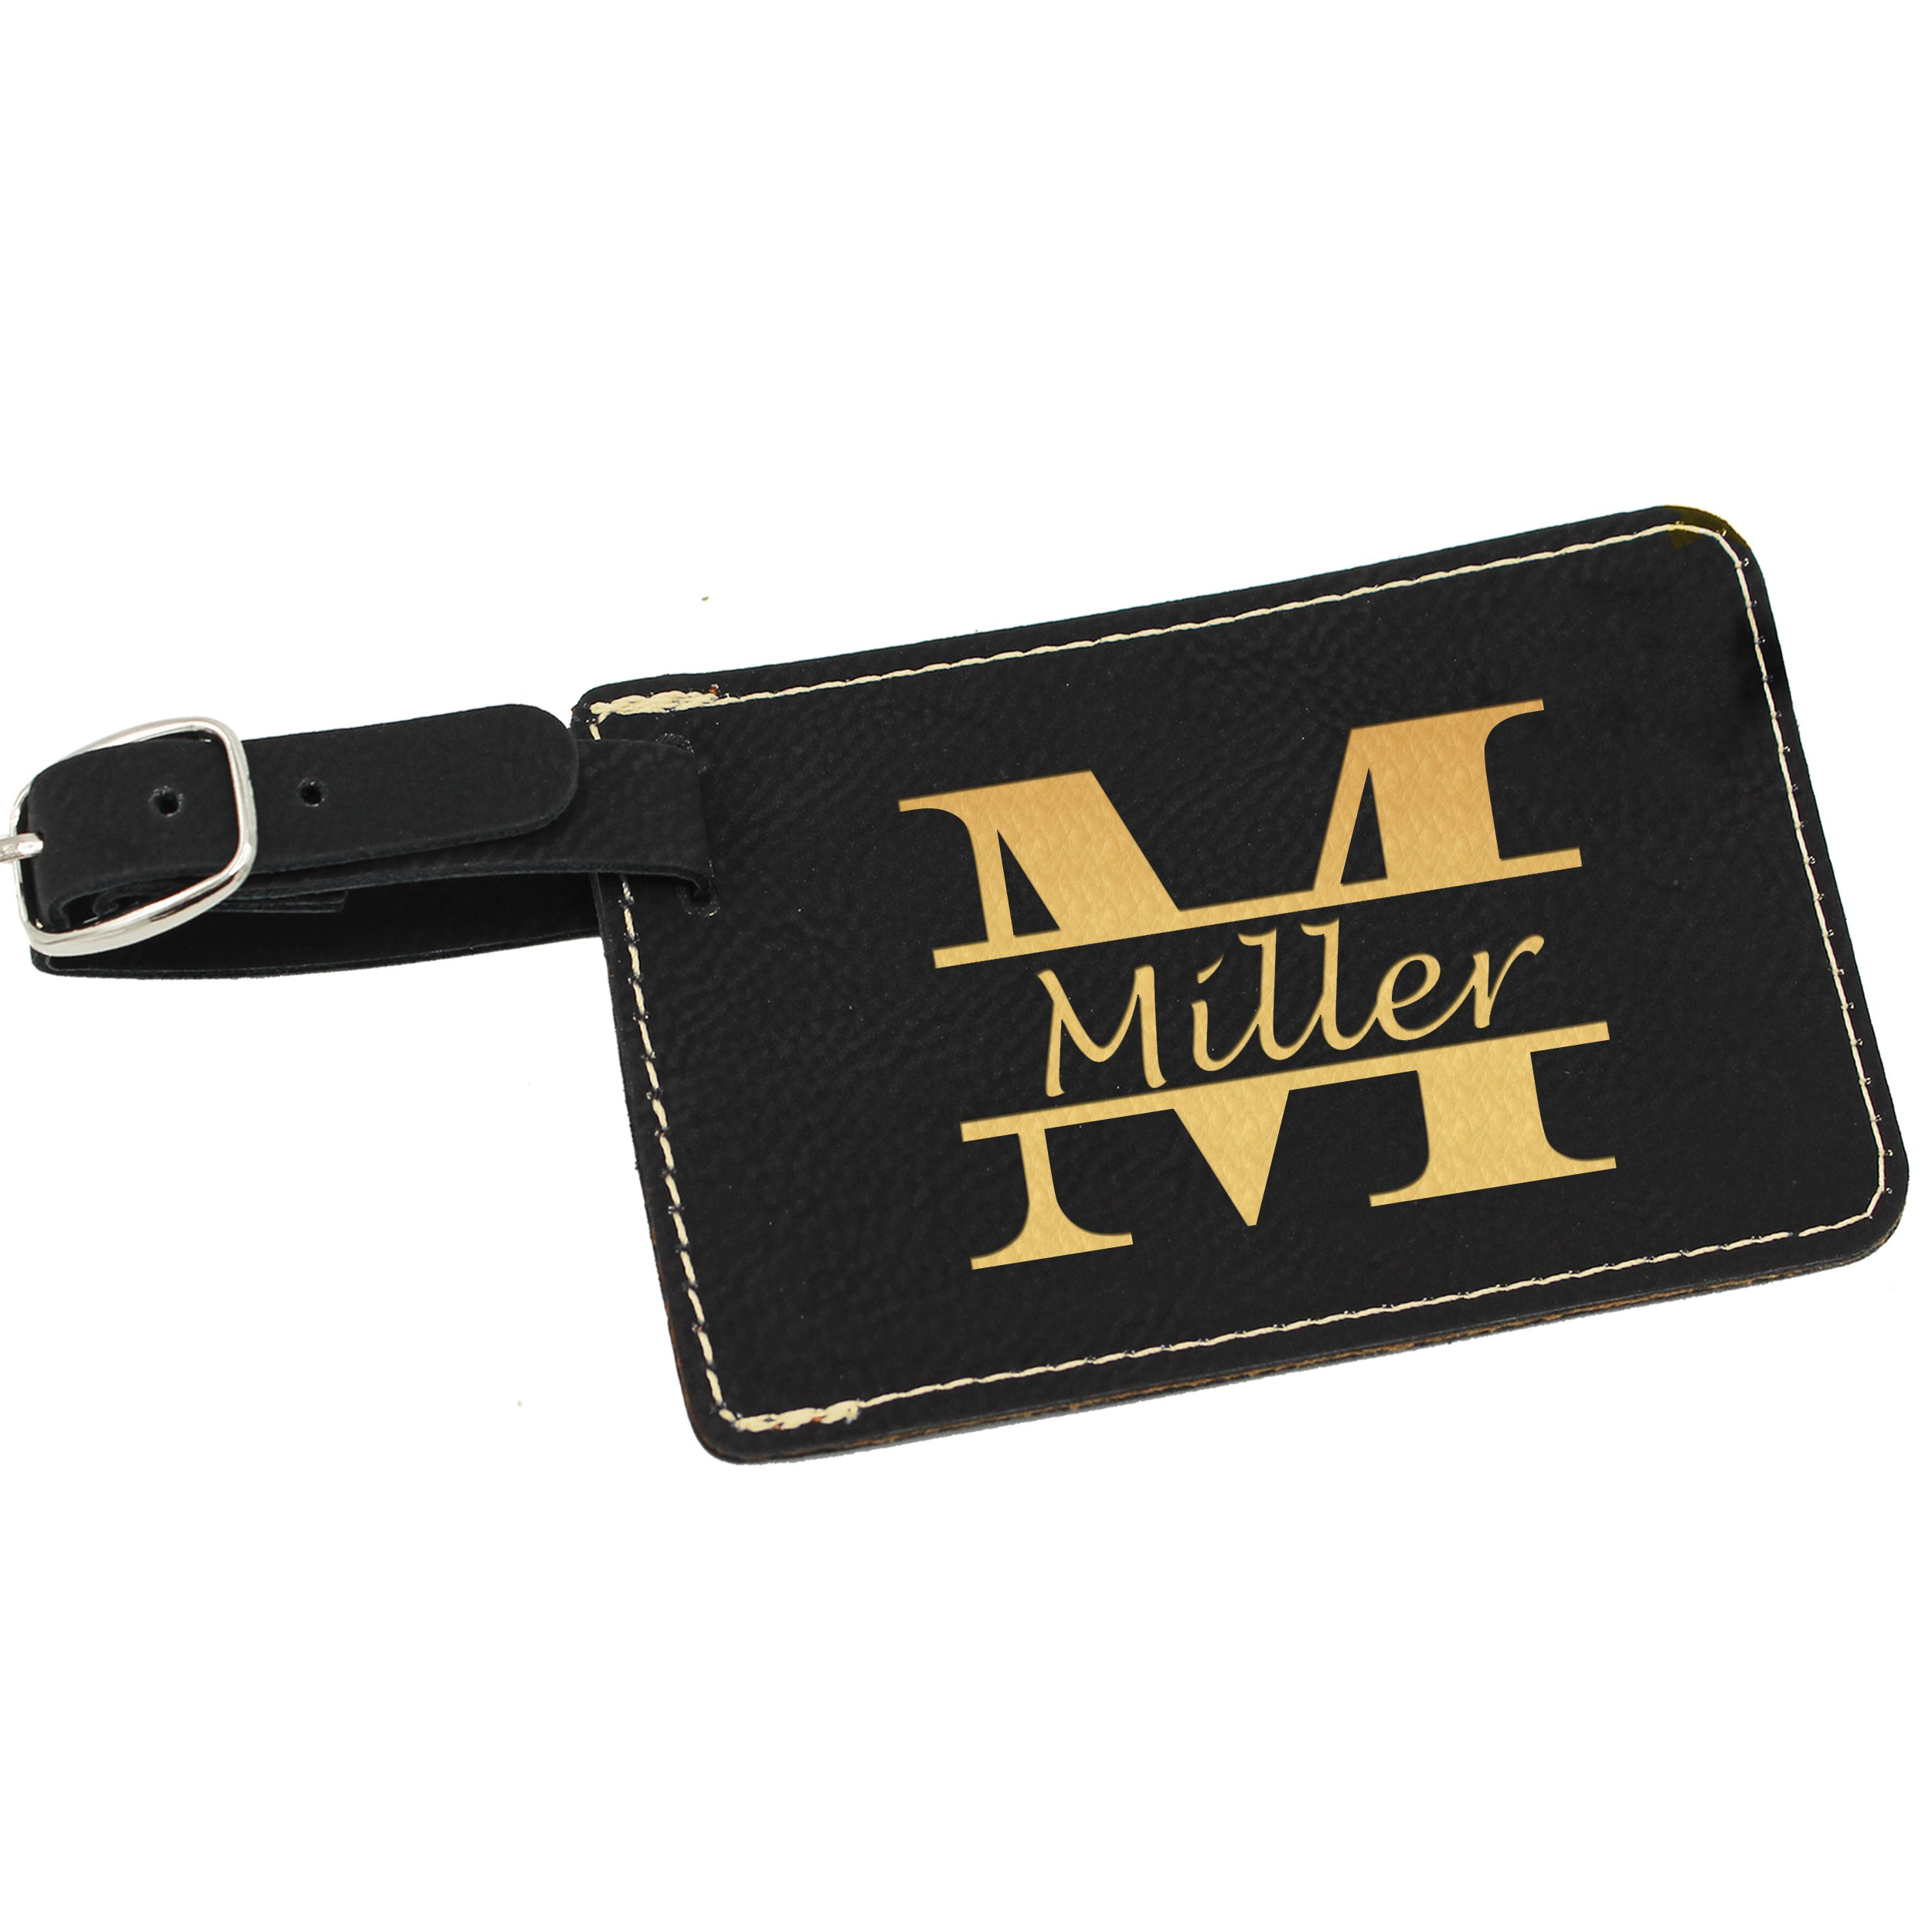 Custom Personalized Luggage Tag - Engraved Travel Gifts - Monogrammed for Free (Black with Gold)